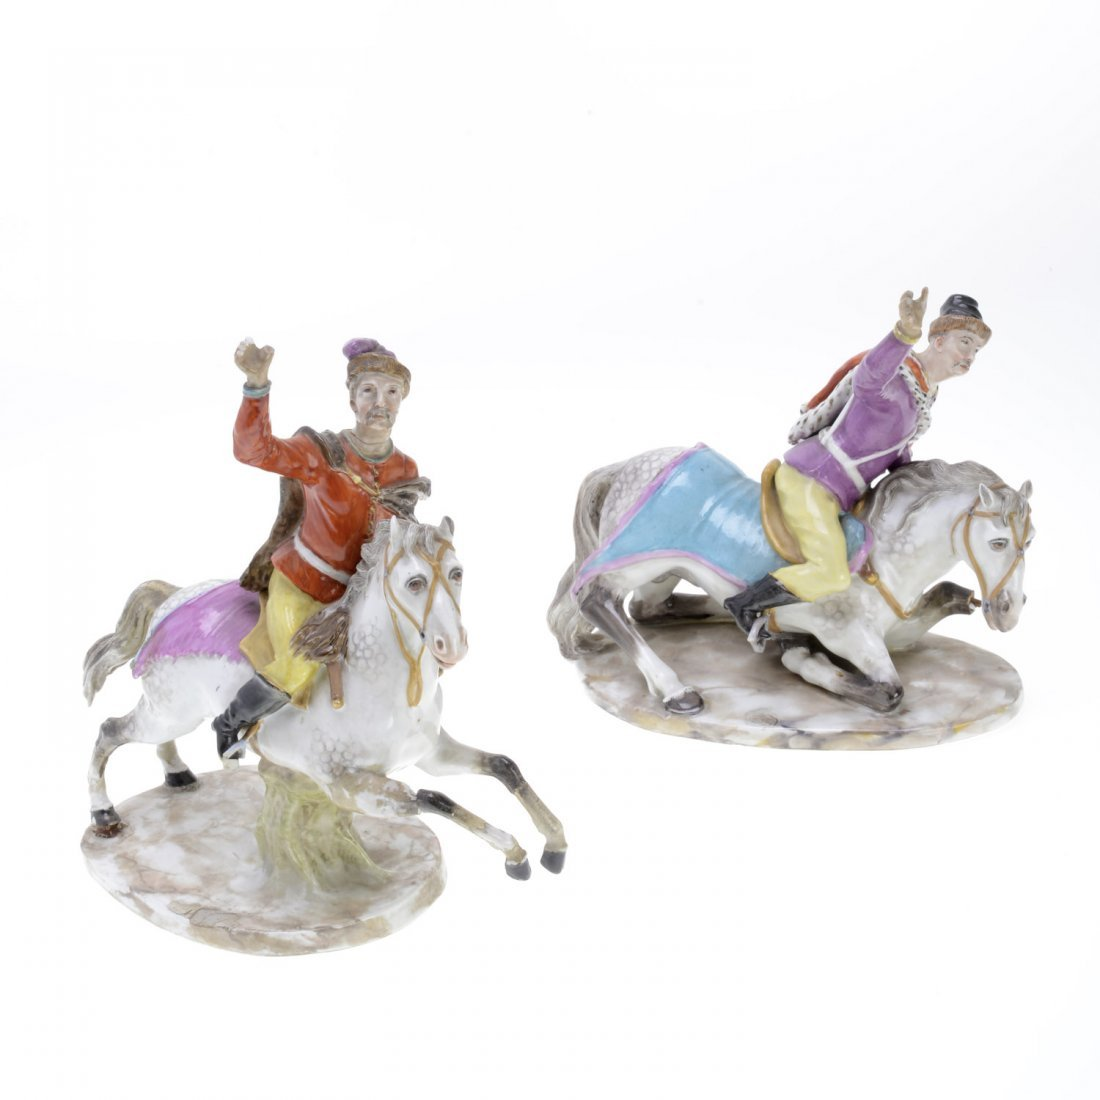 (2) Meissen porcelain Hussar soldiers on horseback